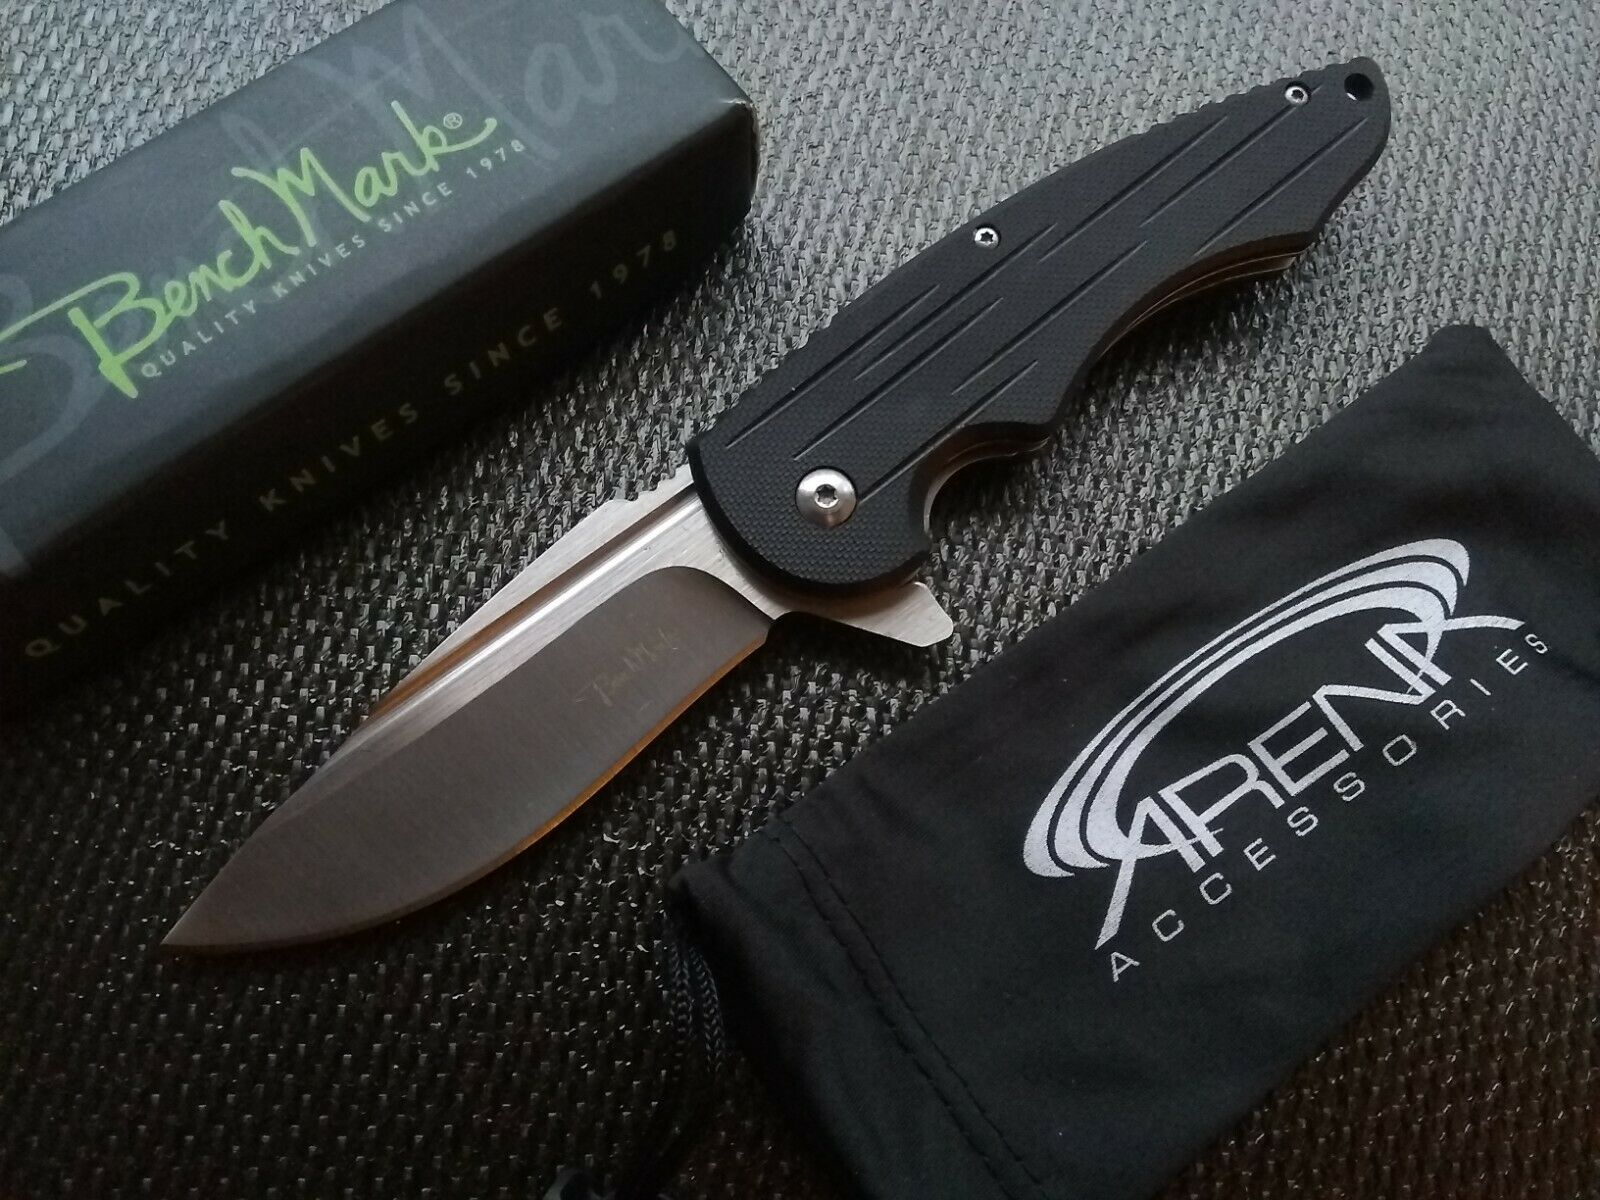 Benchmark Blood Groove Ball Bearing Pivot Black G10 Flipper Knife Pocket Folder